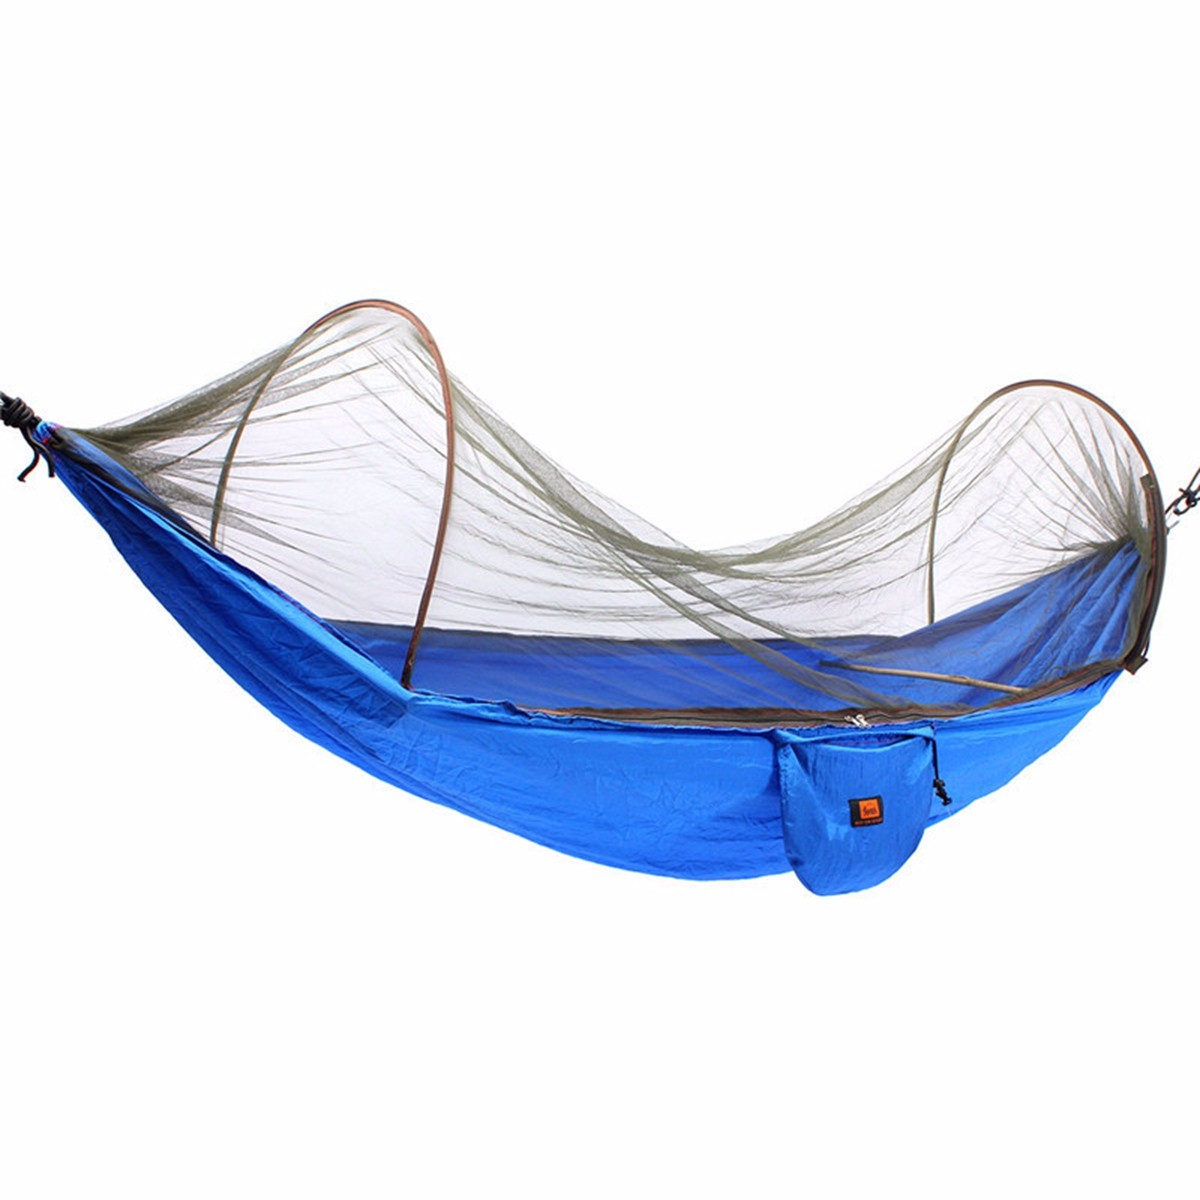 Jeteven Portable Strength Camping Hammock Hanging Bed With Mosquito Net Black Blue